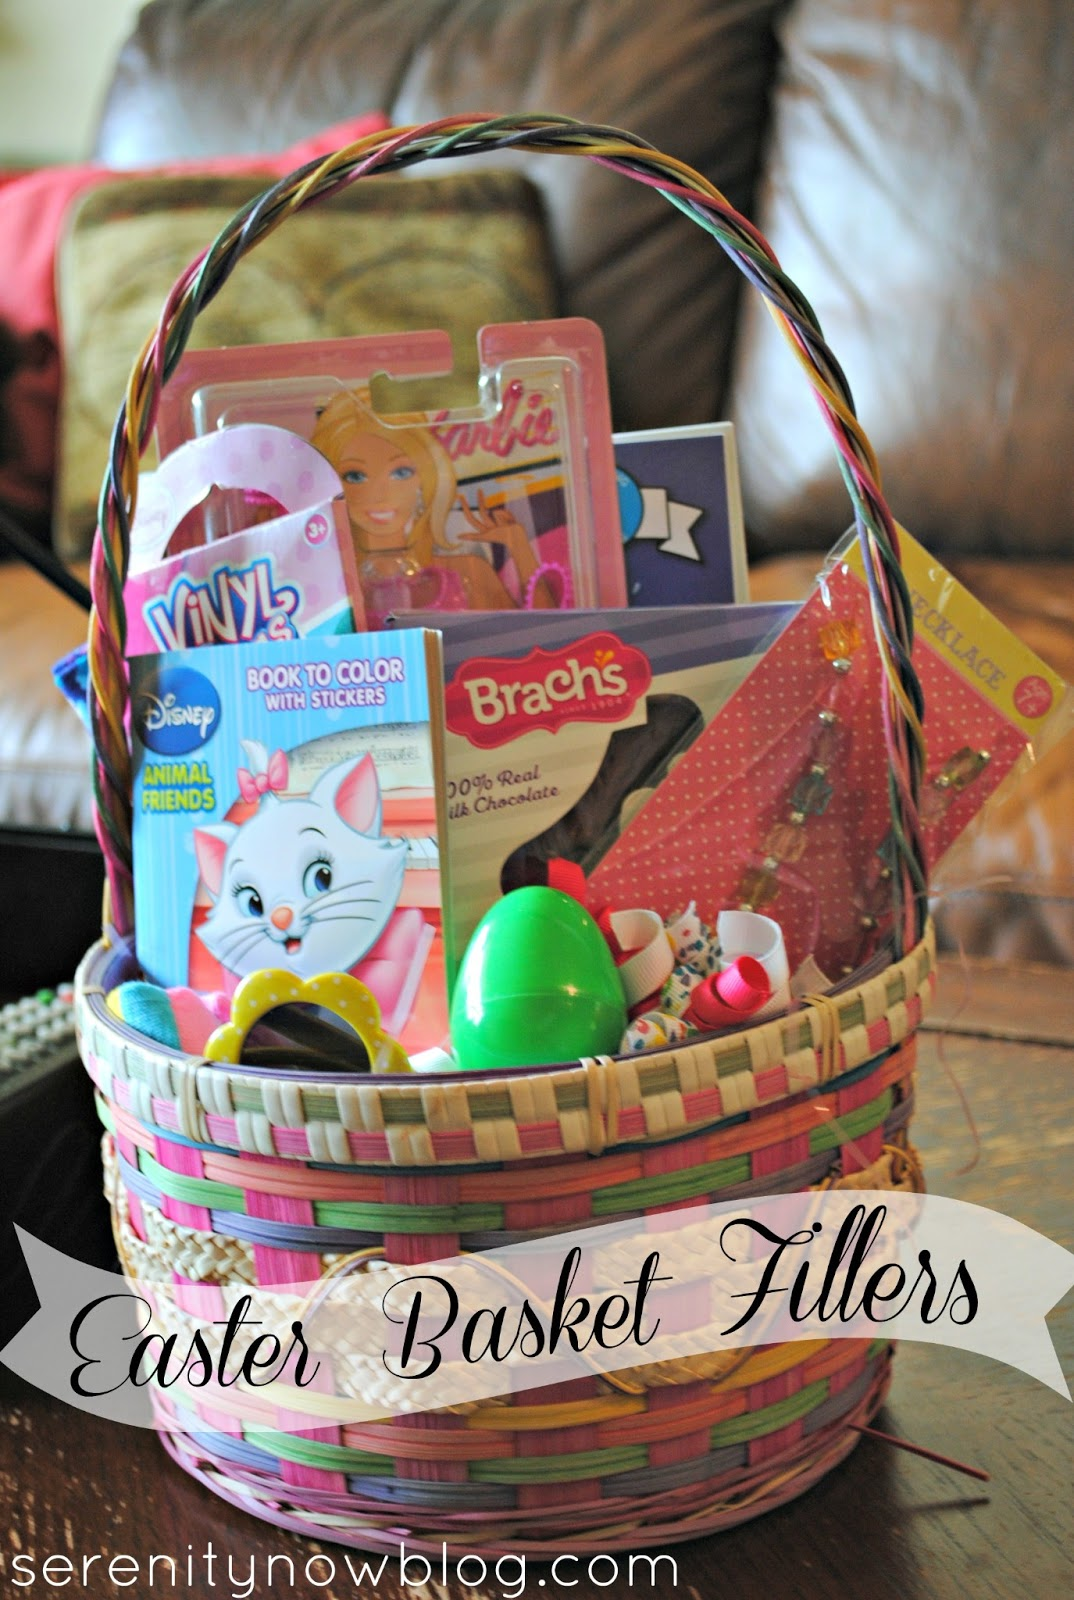 Serenity now easter basket filler ideas easter gifts for kids easter basket filler ideas from serenity now easter negle Choice Image